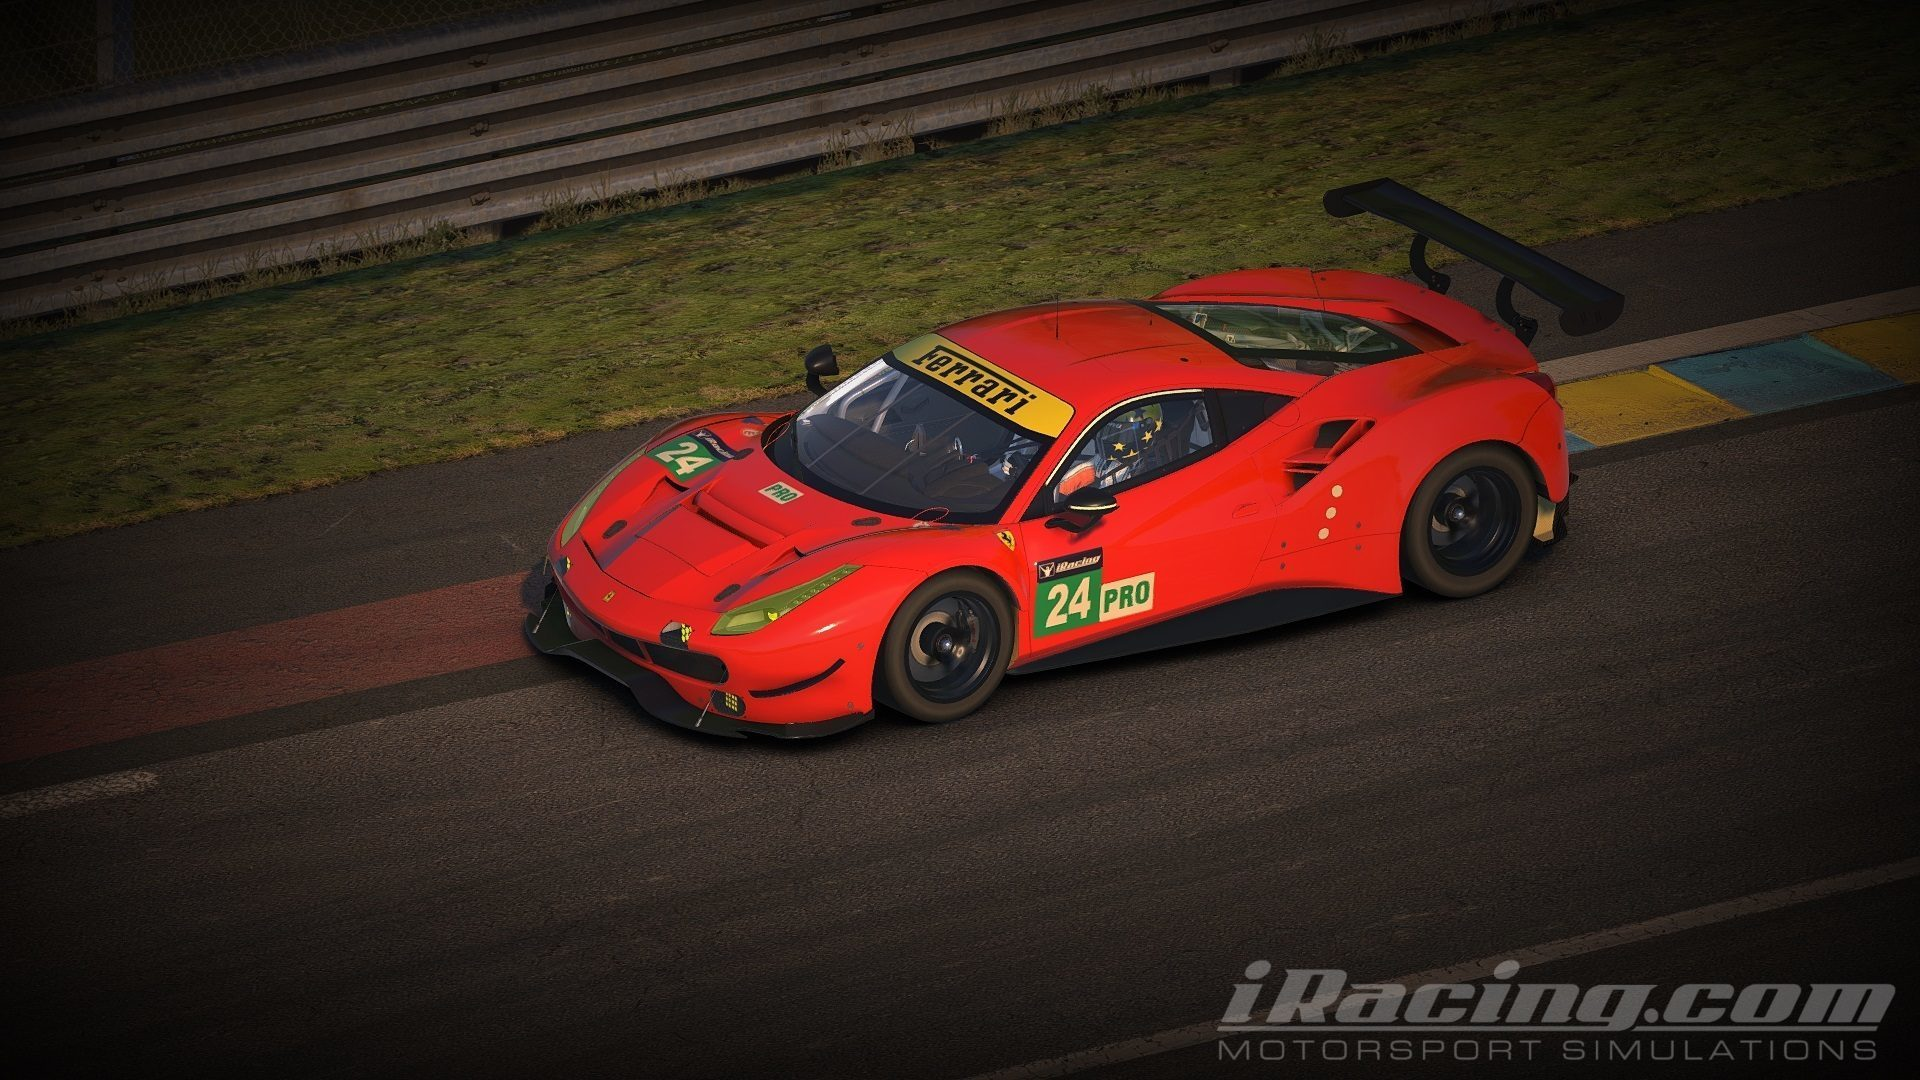 ford gt ferrari 488 and myrtle beach arrive in season 3 build of iracing. Black Bedroom Furniture Sets. Home Design Ideas